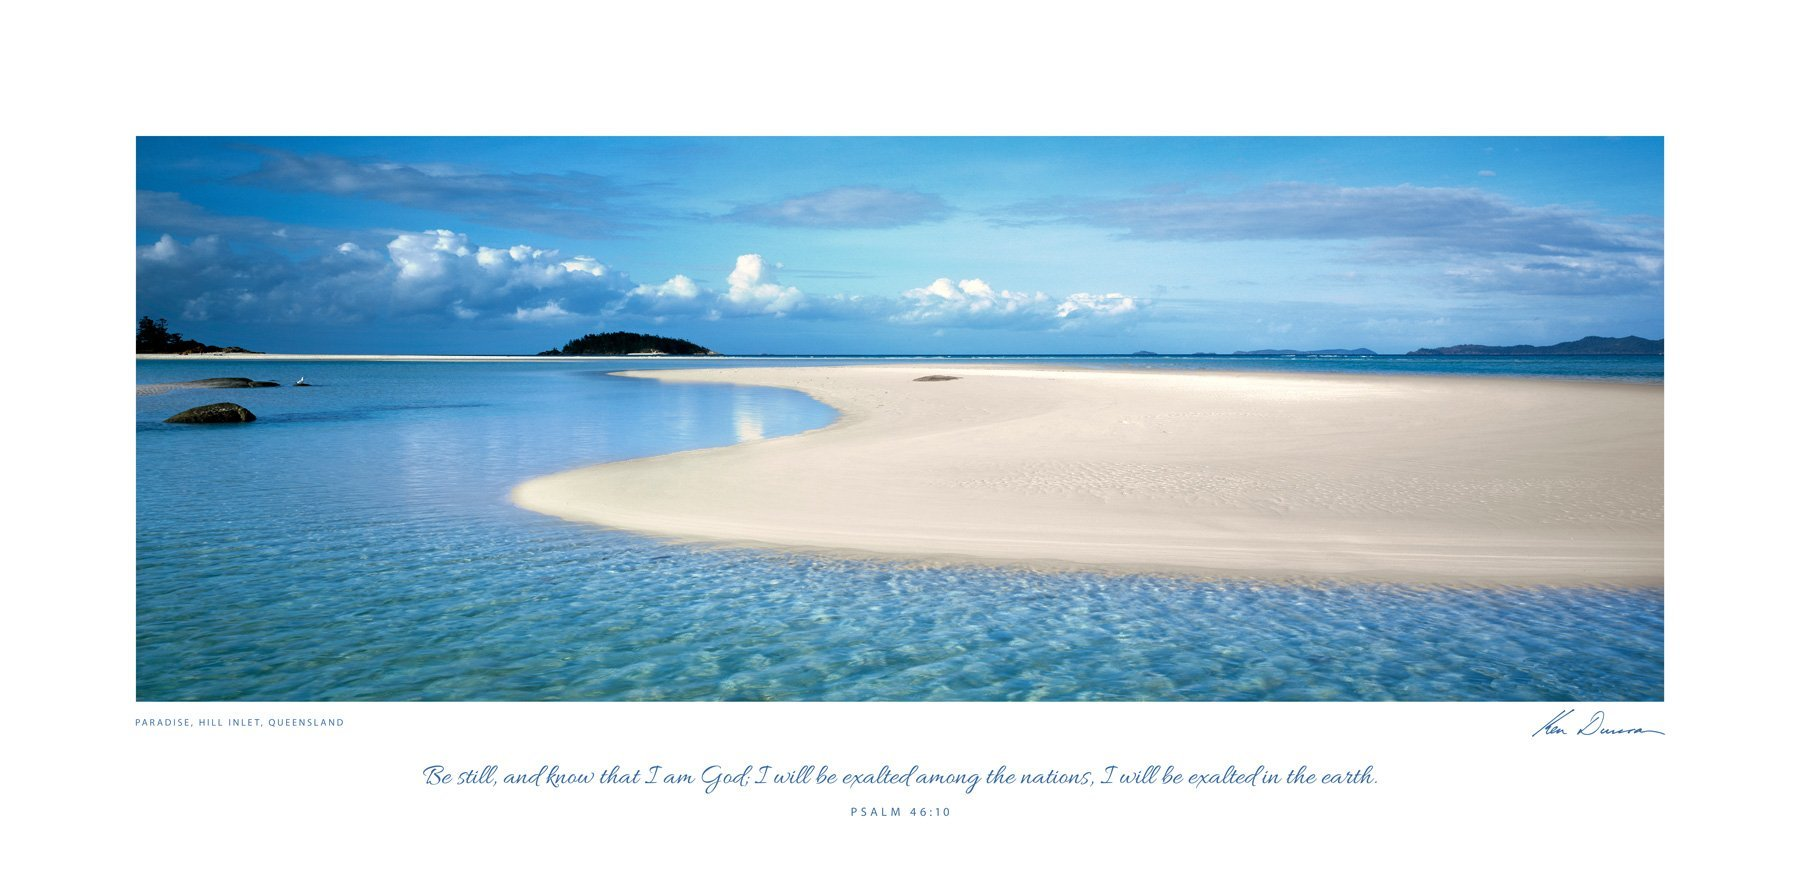 Paradise, Hill Inlet, Queensland (Bible Verse)